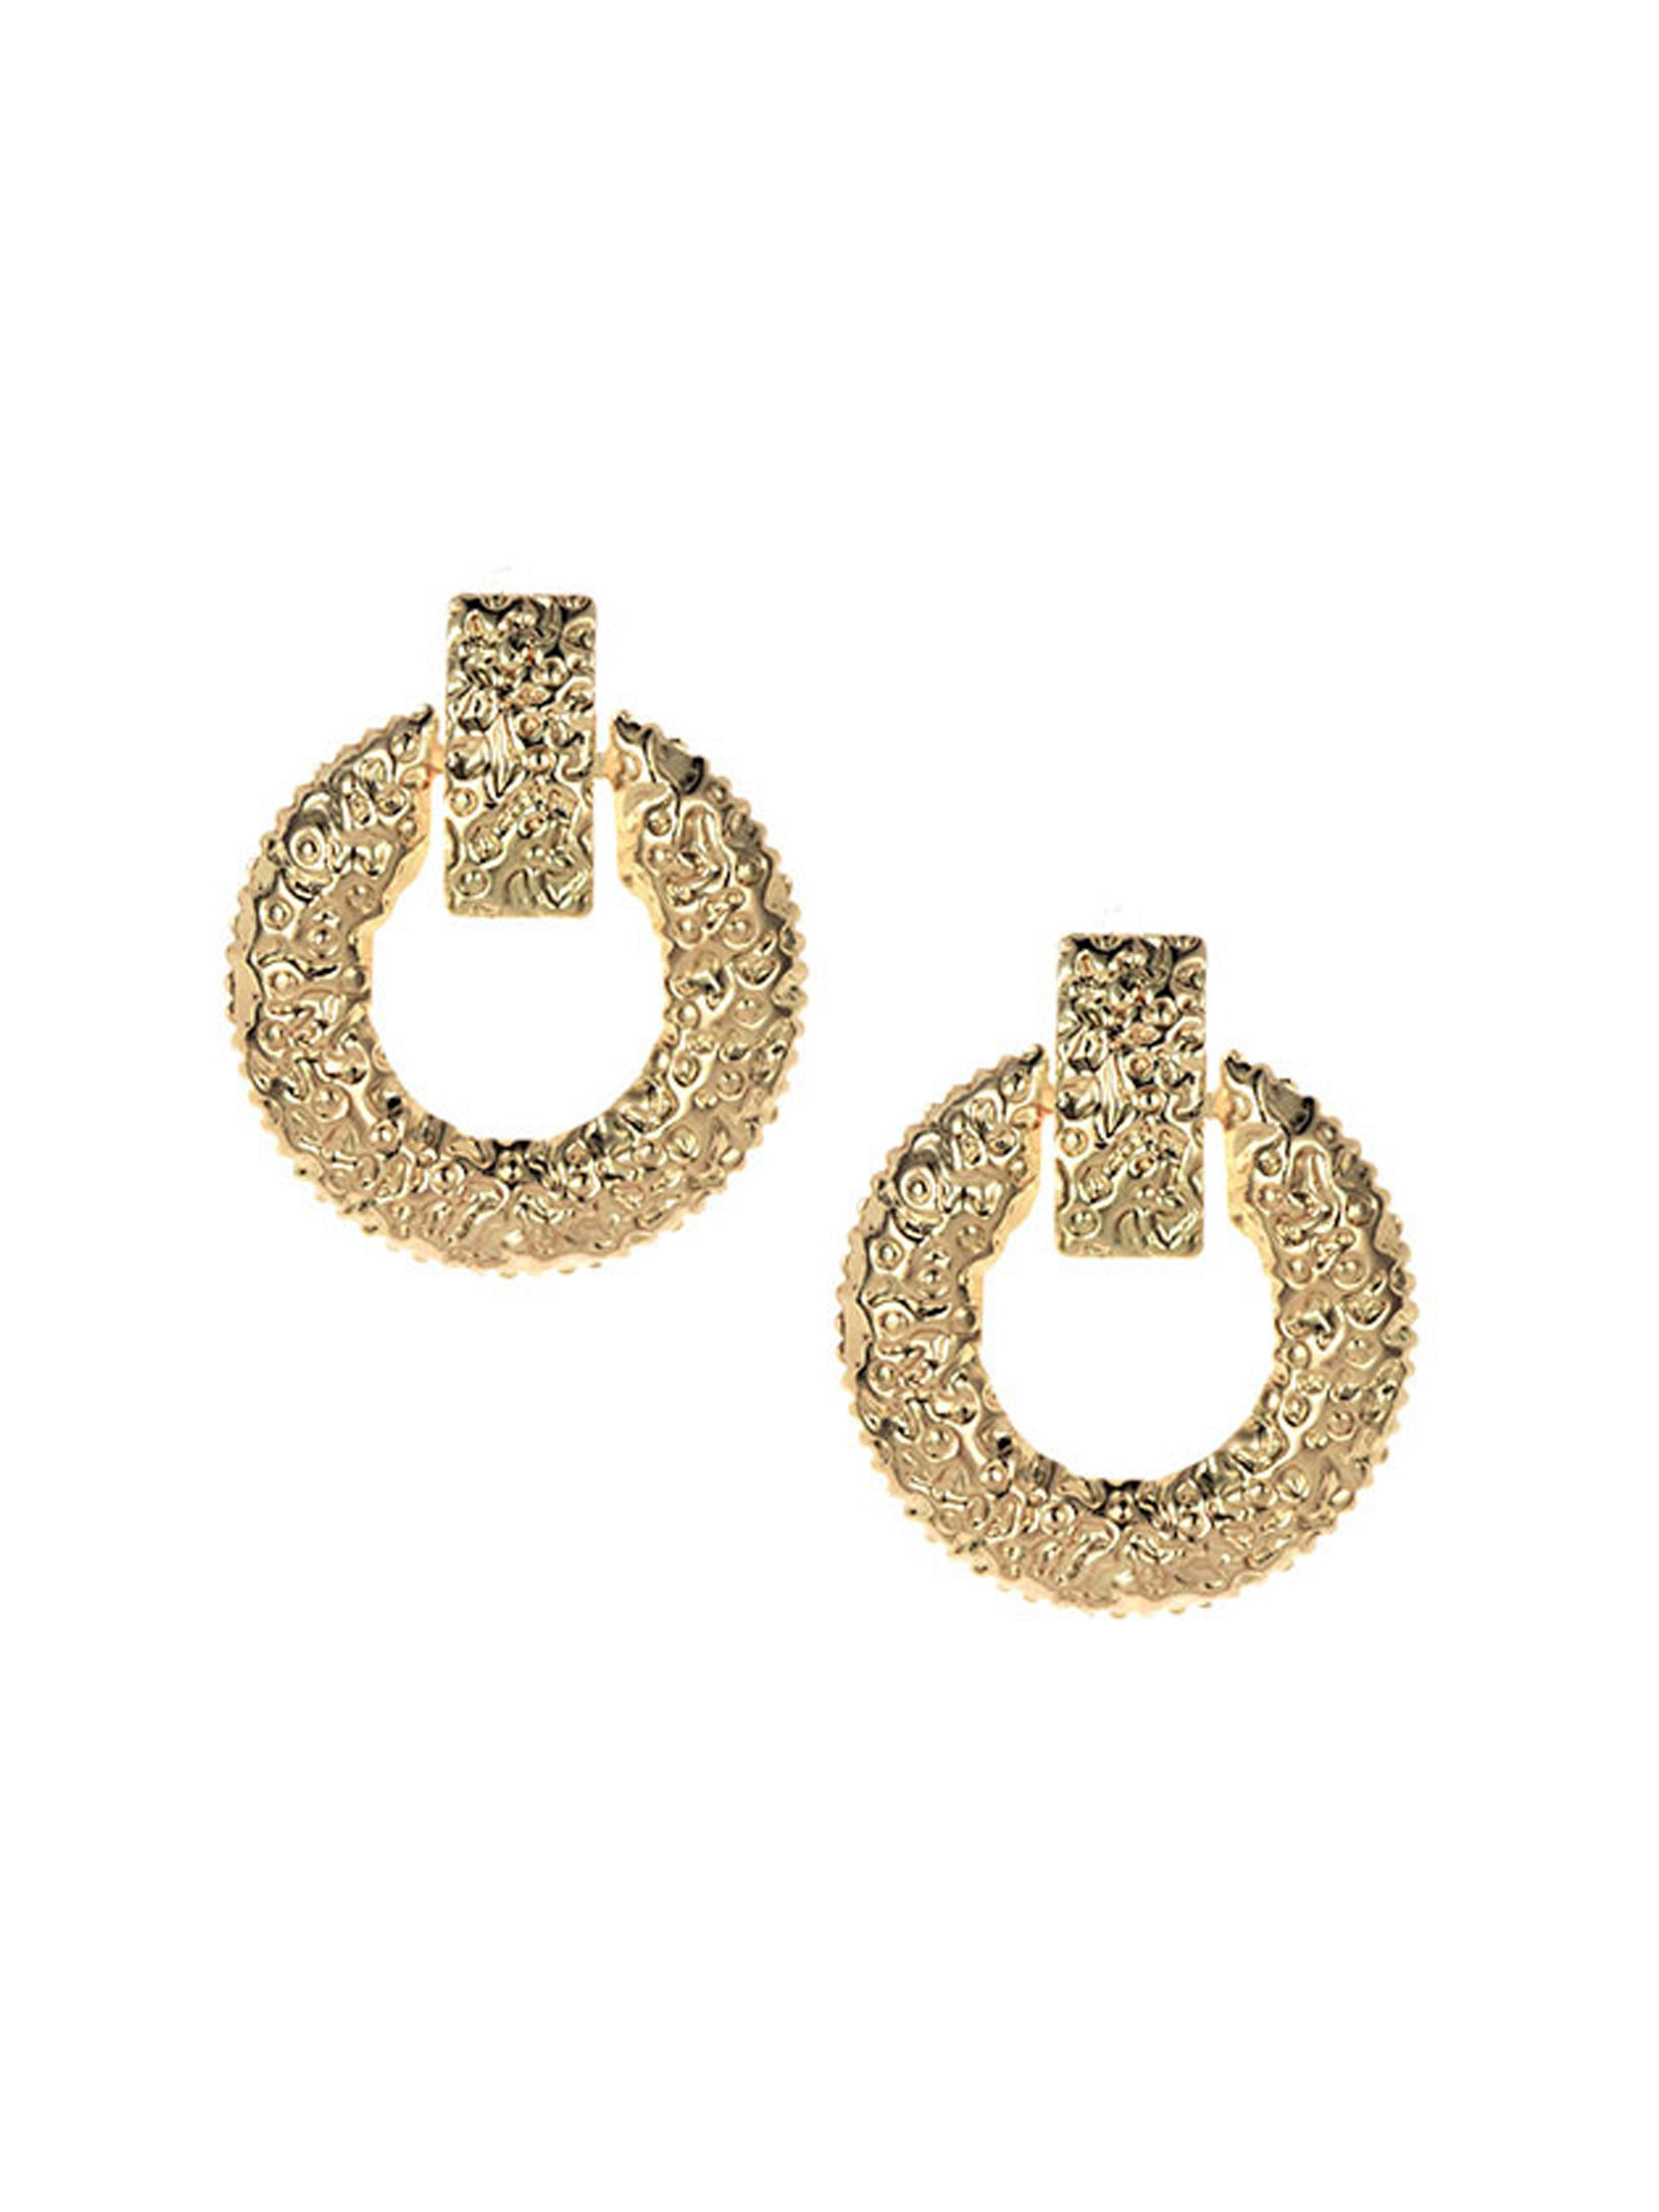 Textured Circular Stud Earrings-STYLE FIESTA-Earring